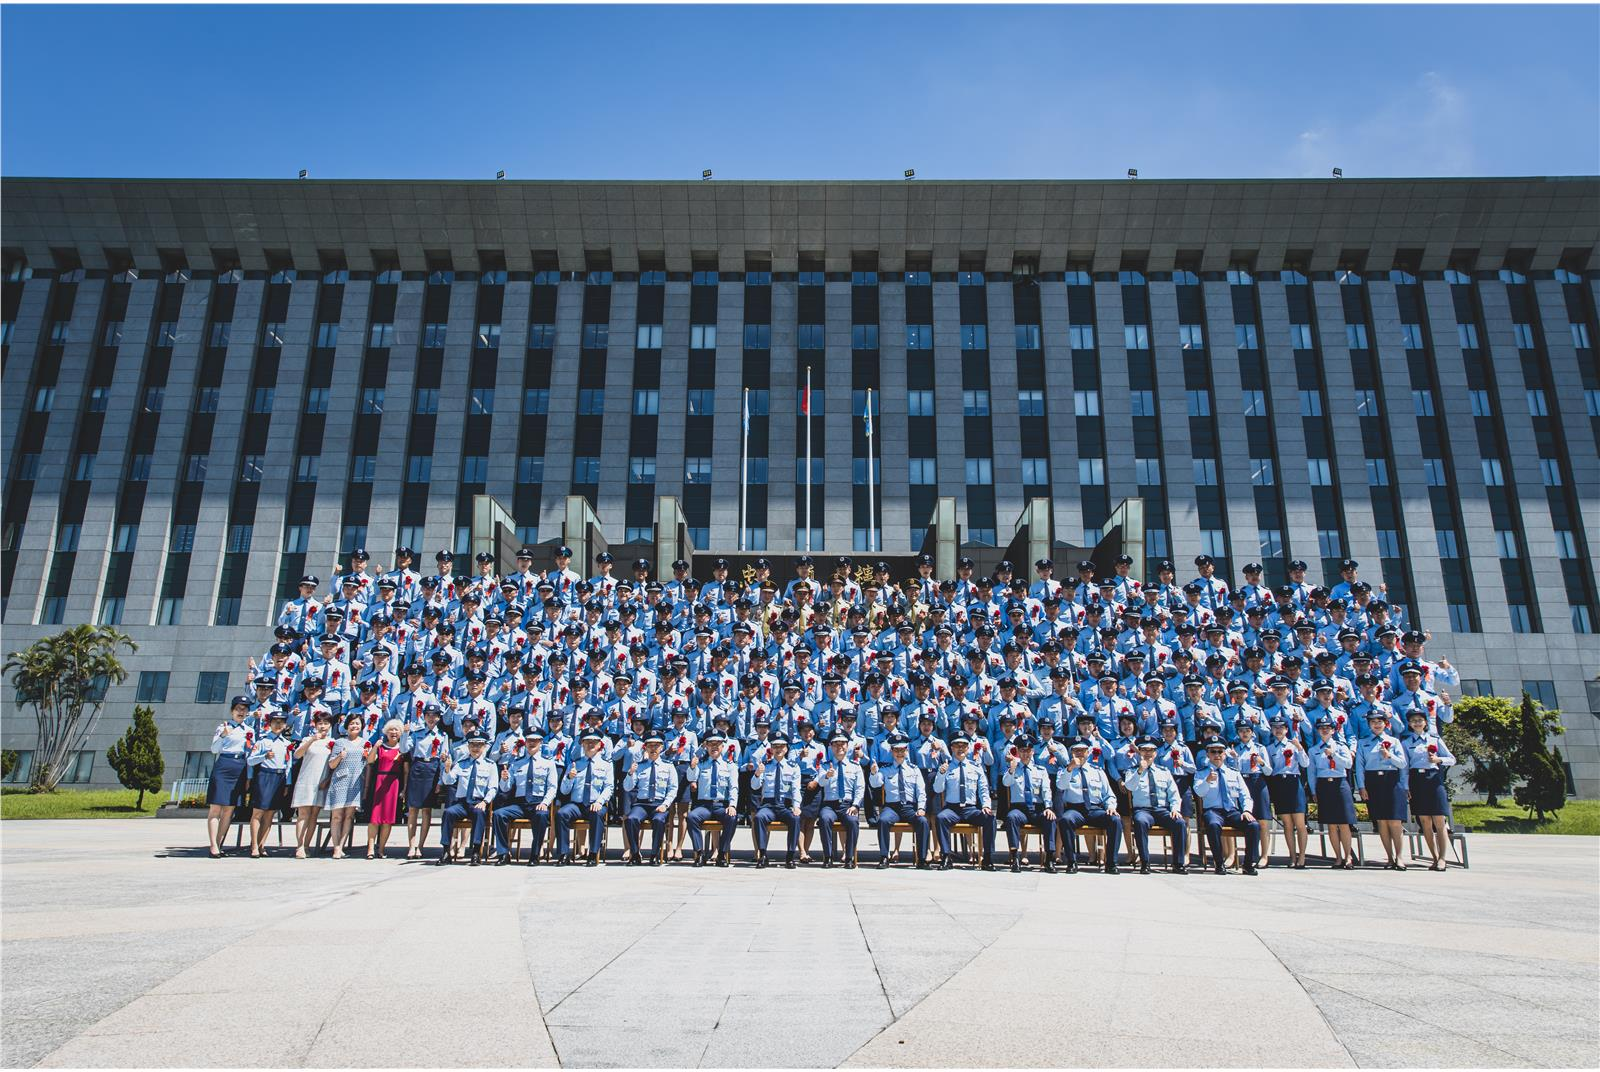 Air Force celebrates the 814 Victory and preserves heritage